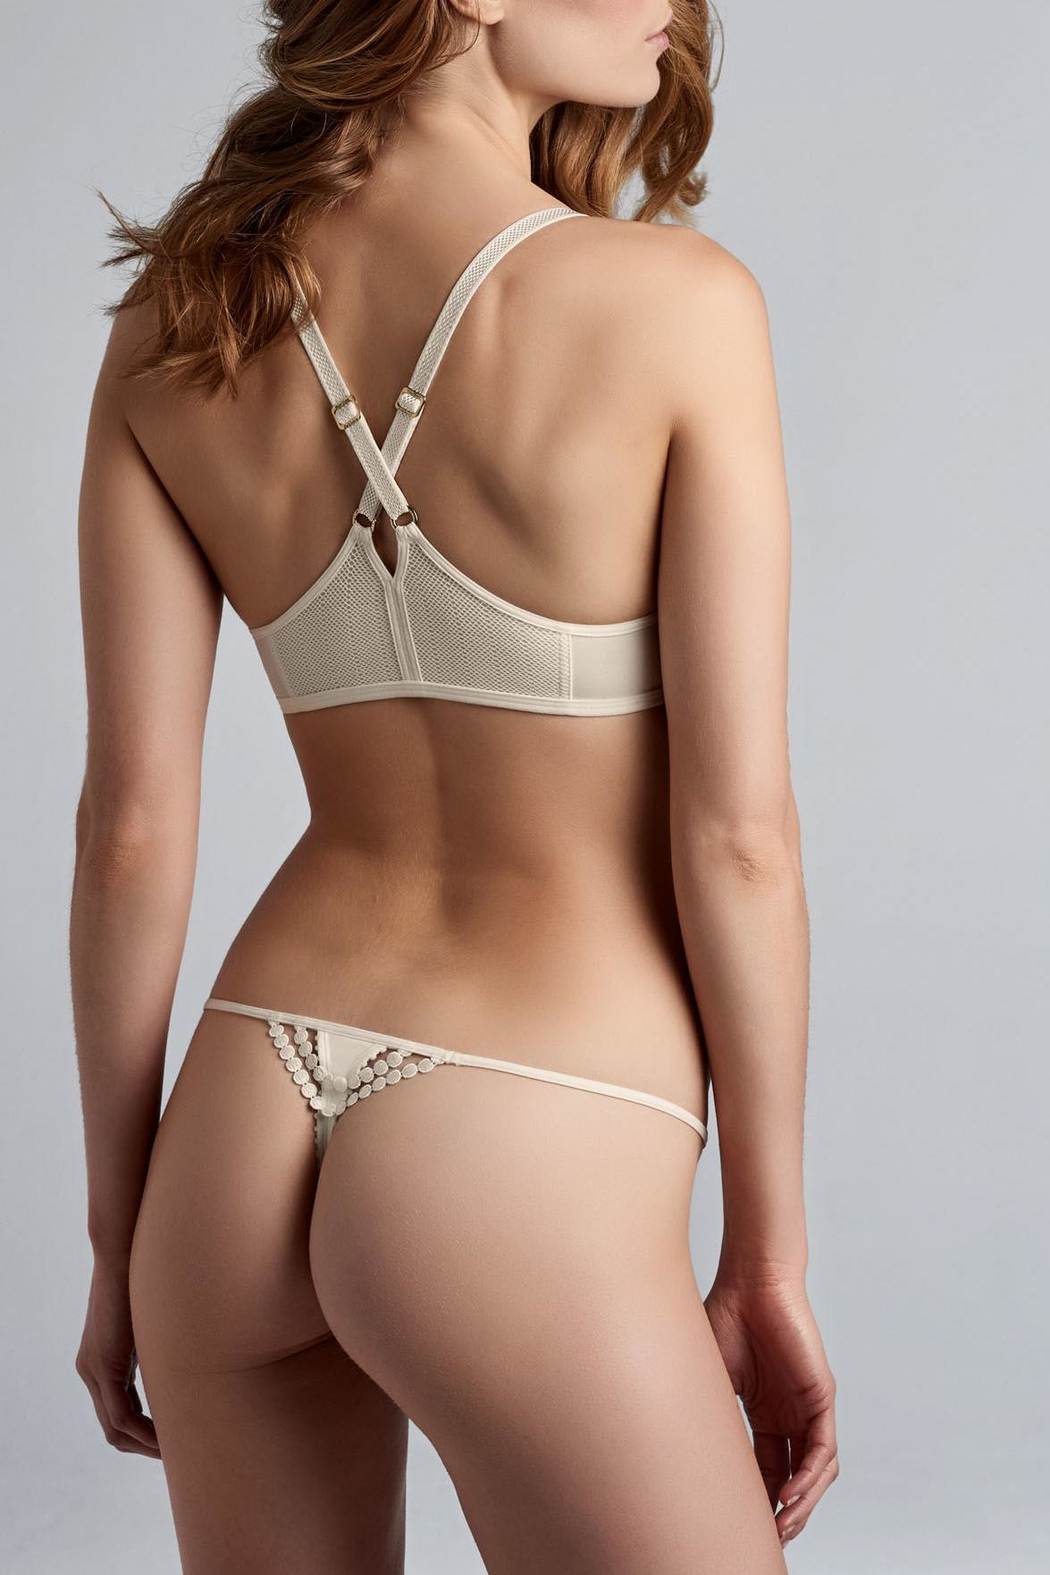 marlies dekkers Mauritshuis String Thong - Front Cropped Image